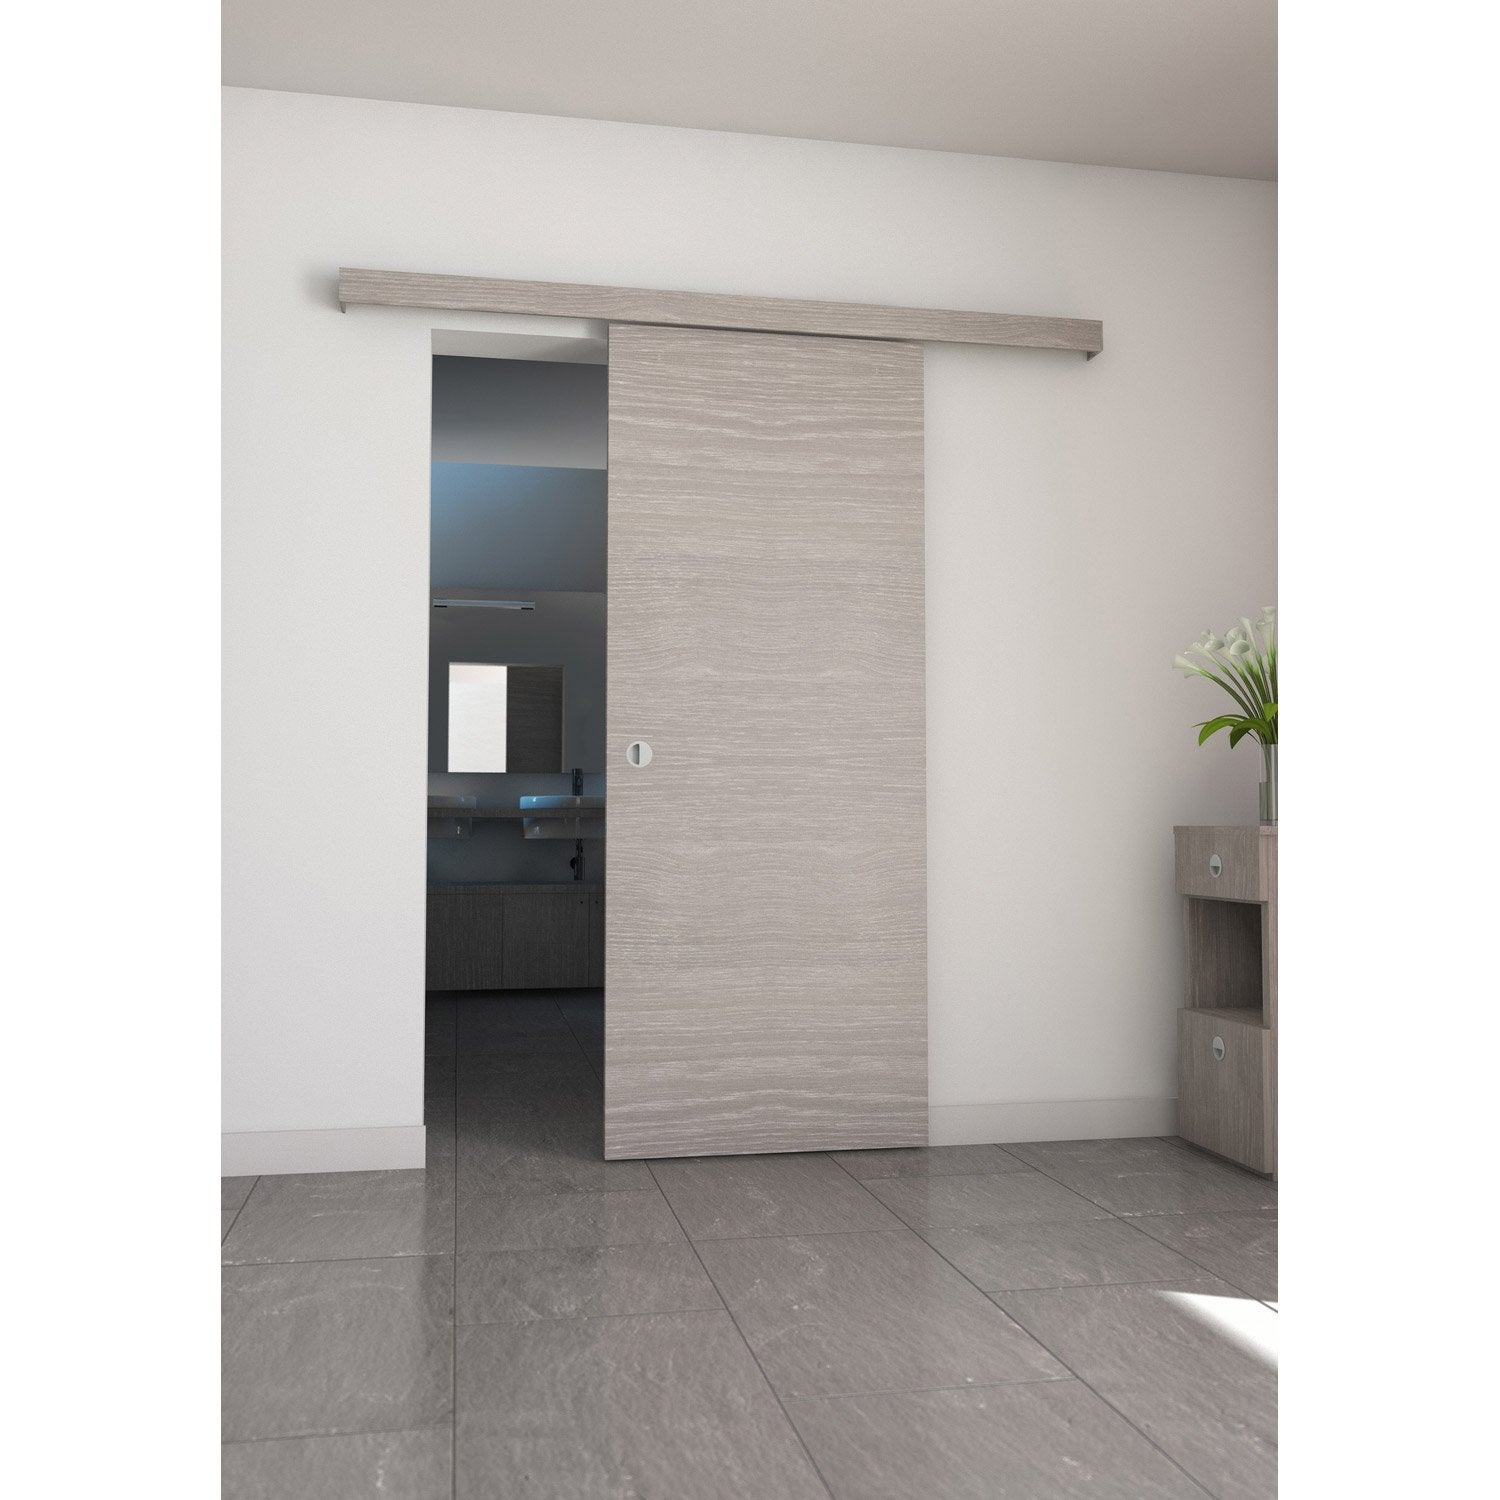 Ensemble porte coulissante coulicool mdf rev tu aluminium for Porte interieure contemporaine prix